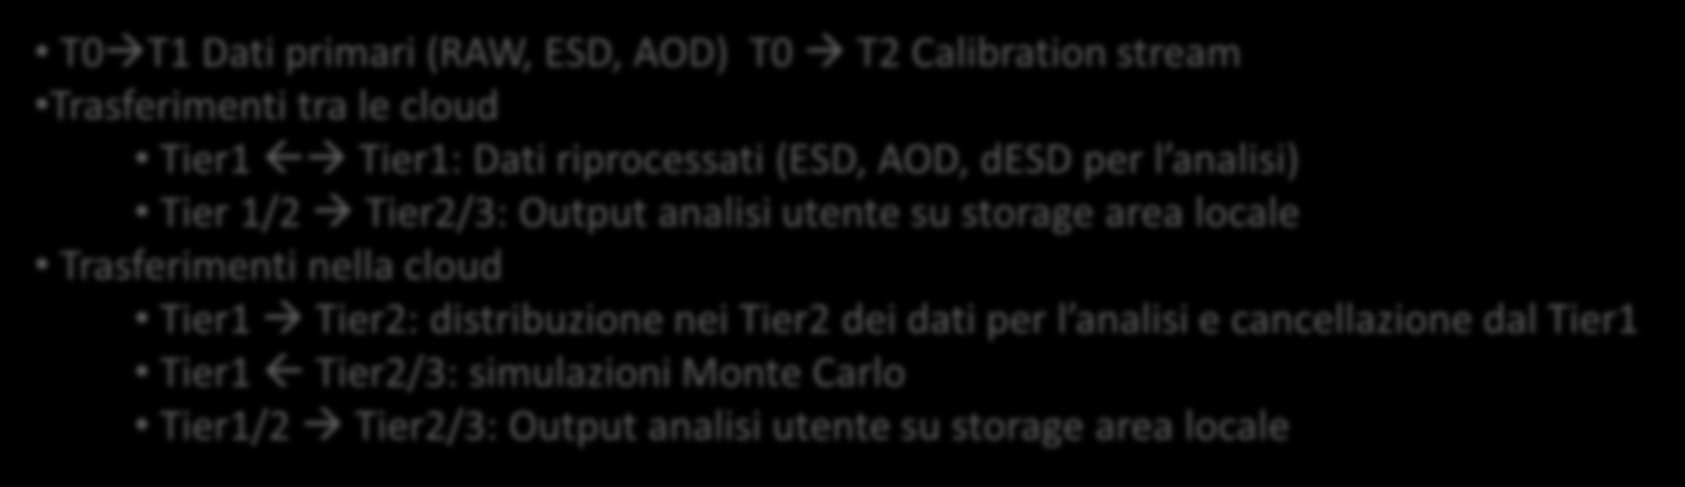 I siti Tier-3 nel modello di calcolo di Atlas Tier-0 Tier-1 Cloud Tier-1 Tier-1 Cloud Tier-2 Tier-2 Tier-2D Tier-2 Tier-3 Tier-3 Tier-3 Cloud T0 T1 Dati primari (RAW, ESD, AOD) T0 T2 Calibration